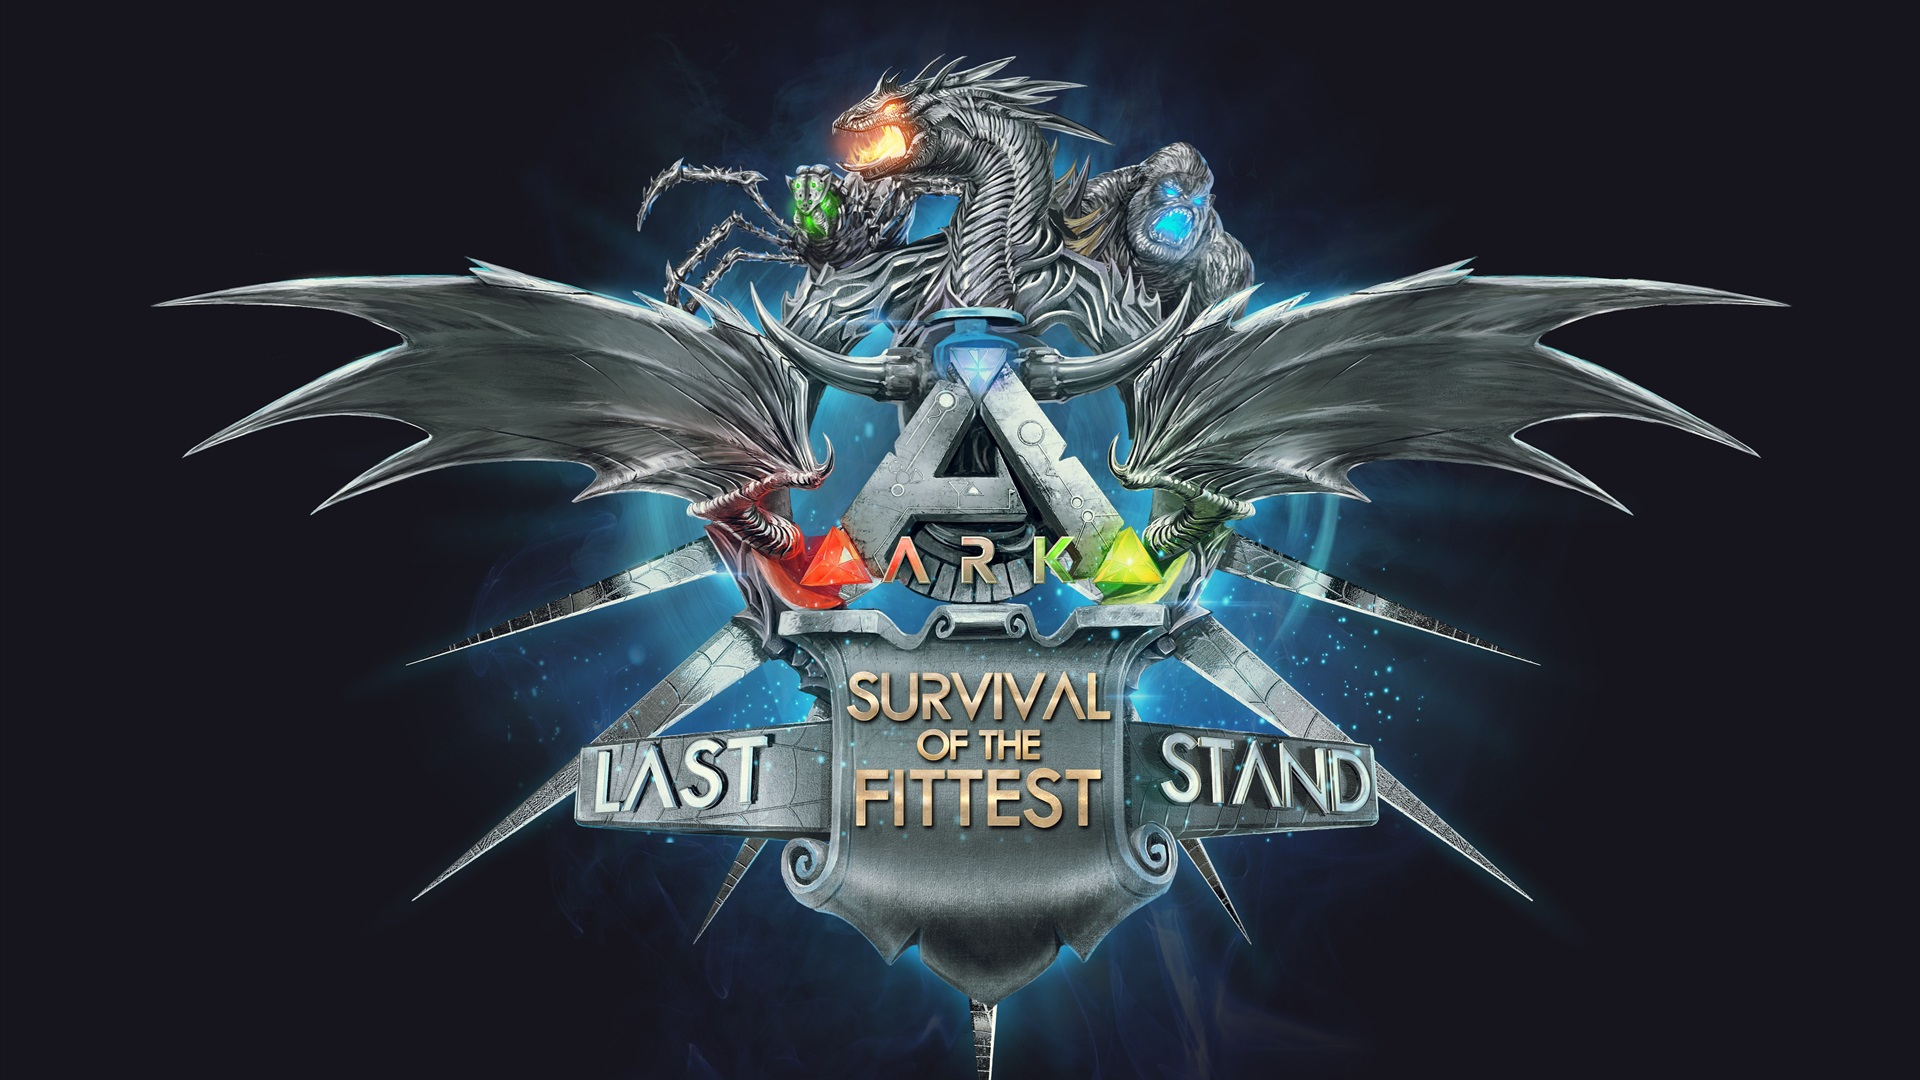 Ark Survival The Fittest